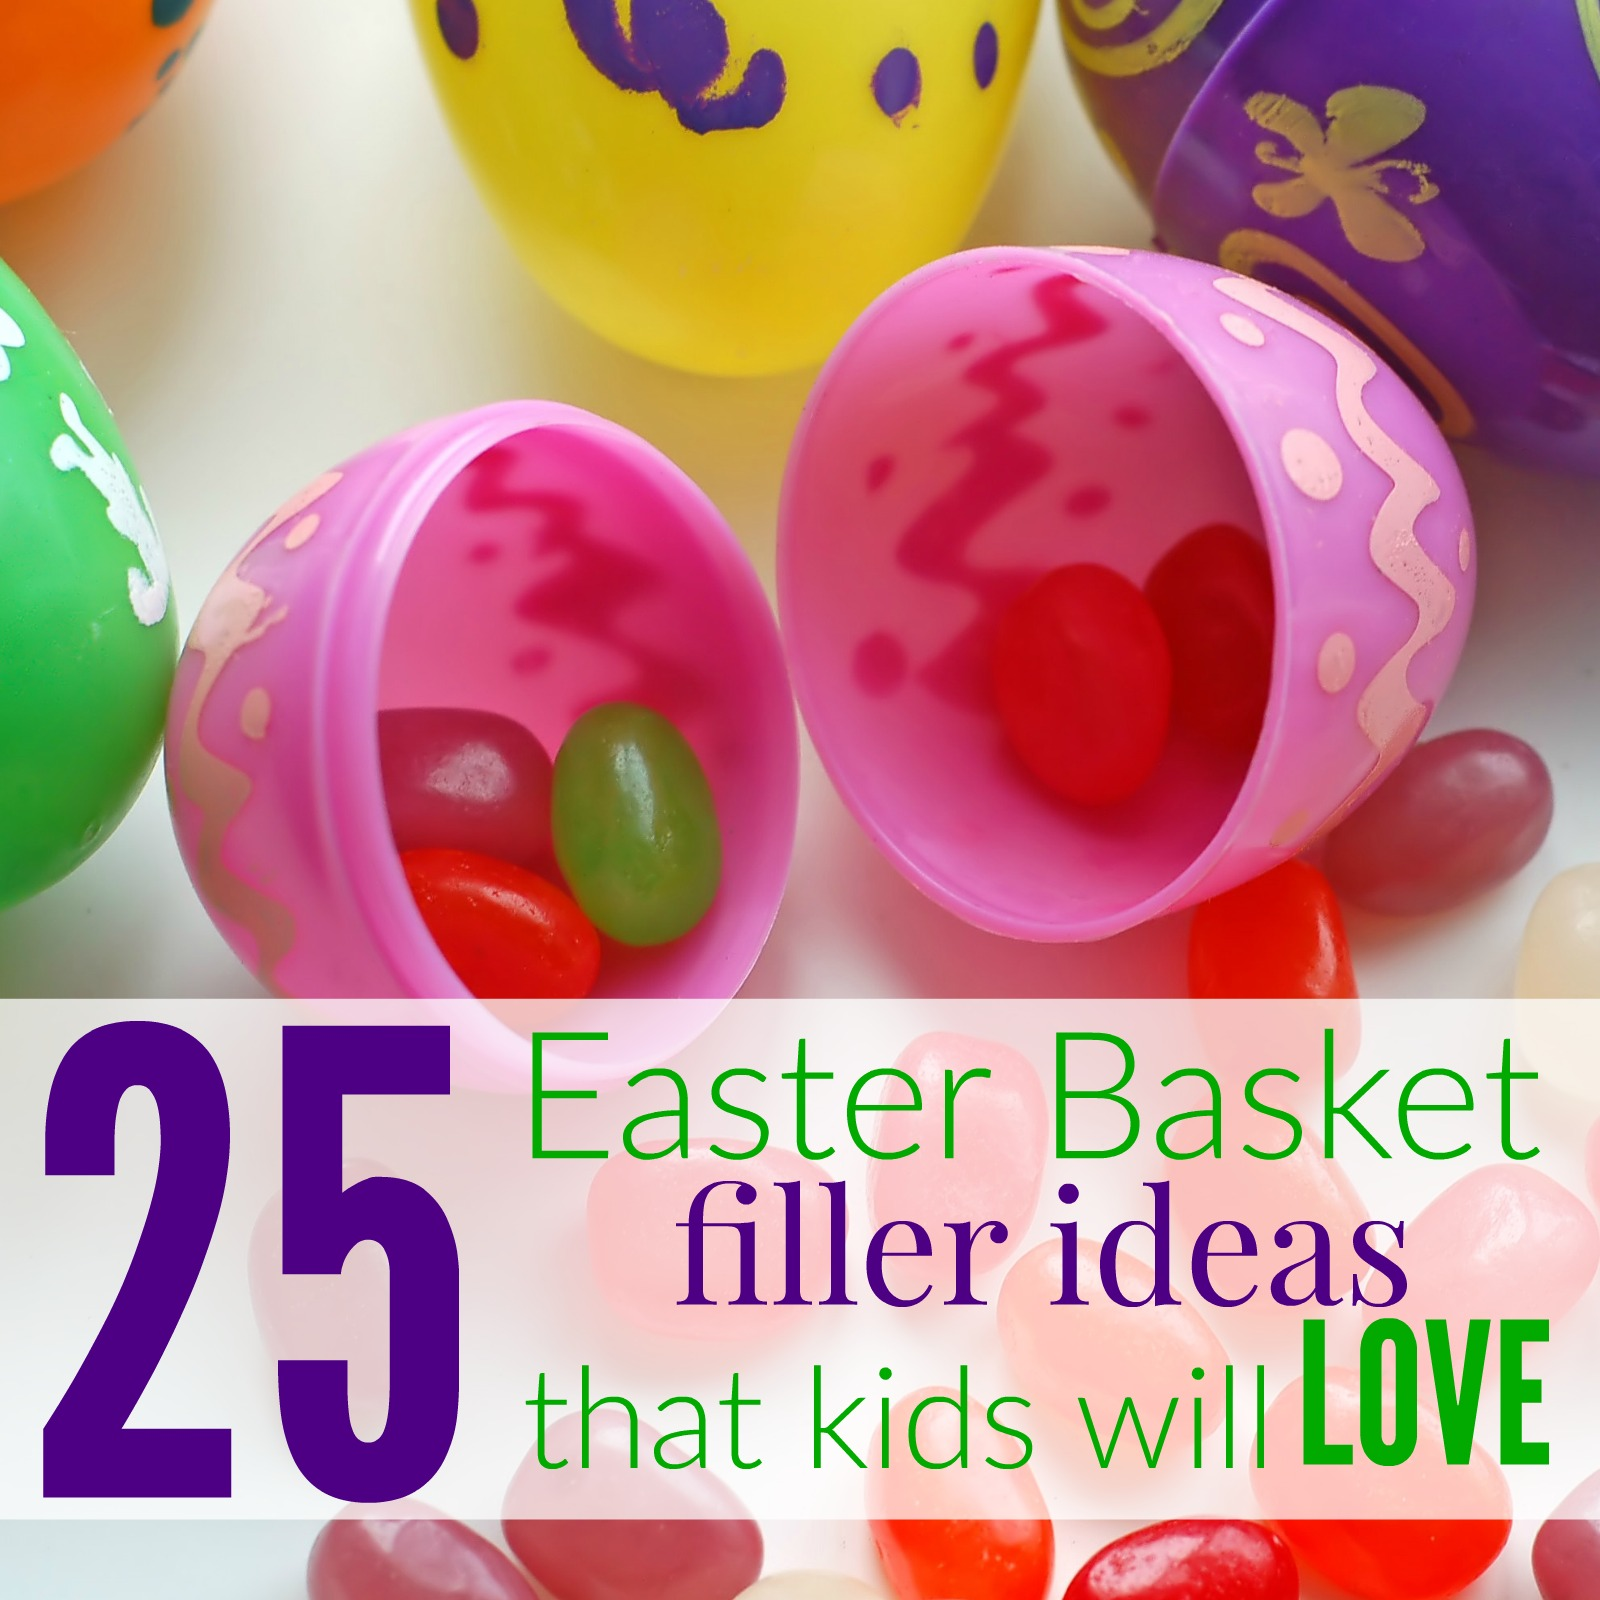 25 Easter Basket Filler Ideas That Kids Will Love